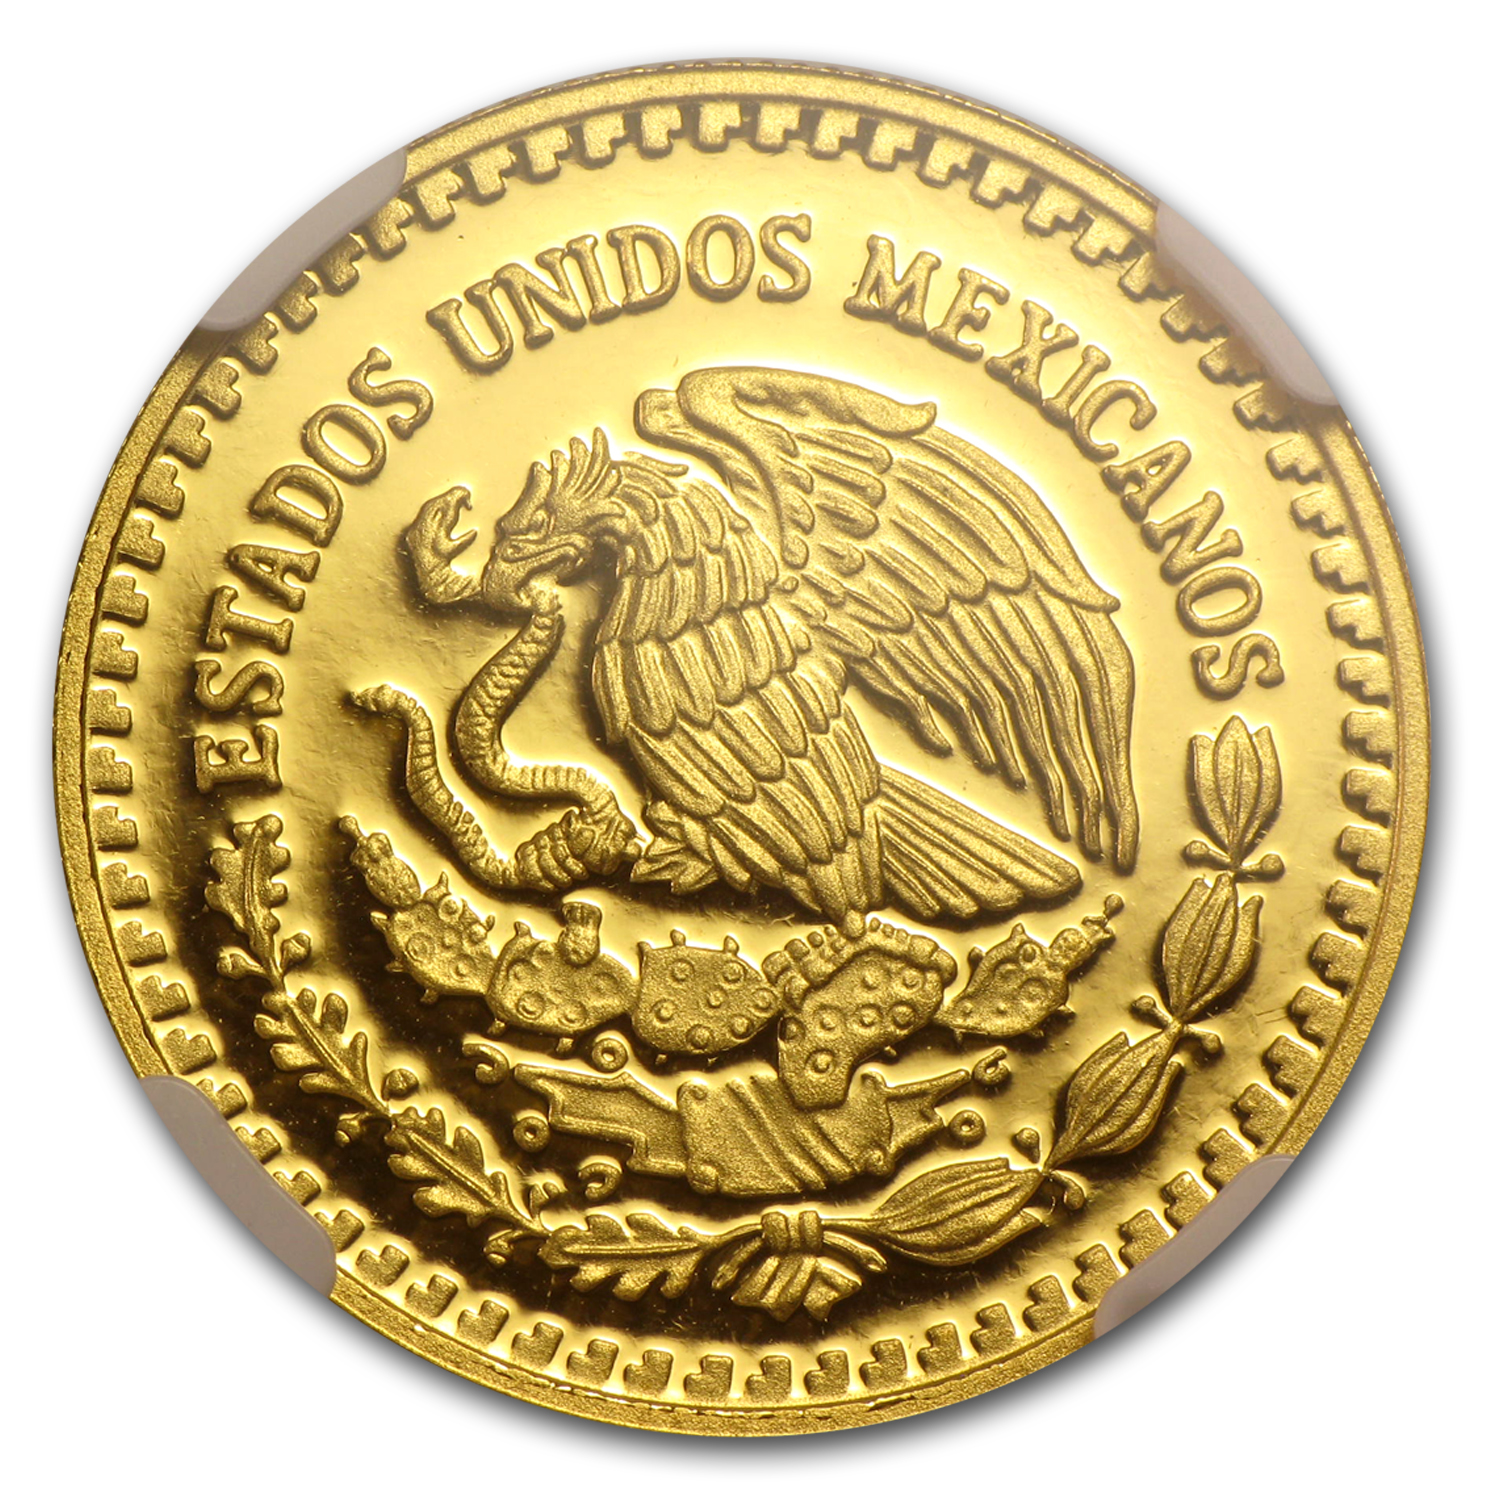 2013 Mexico 1/4 oz Gold Libertad PF-69 NGC